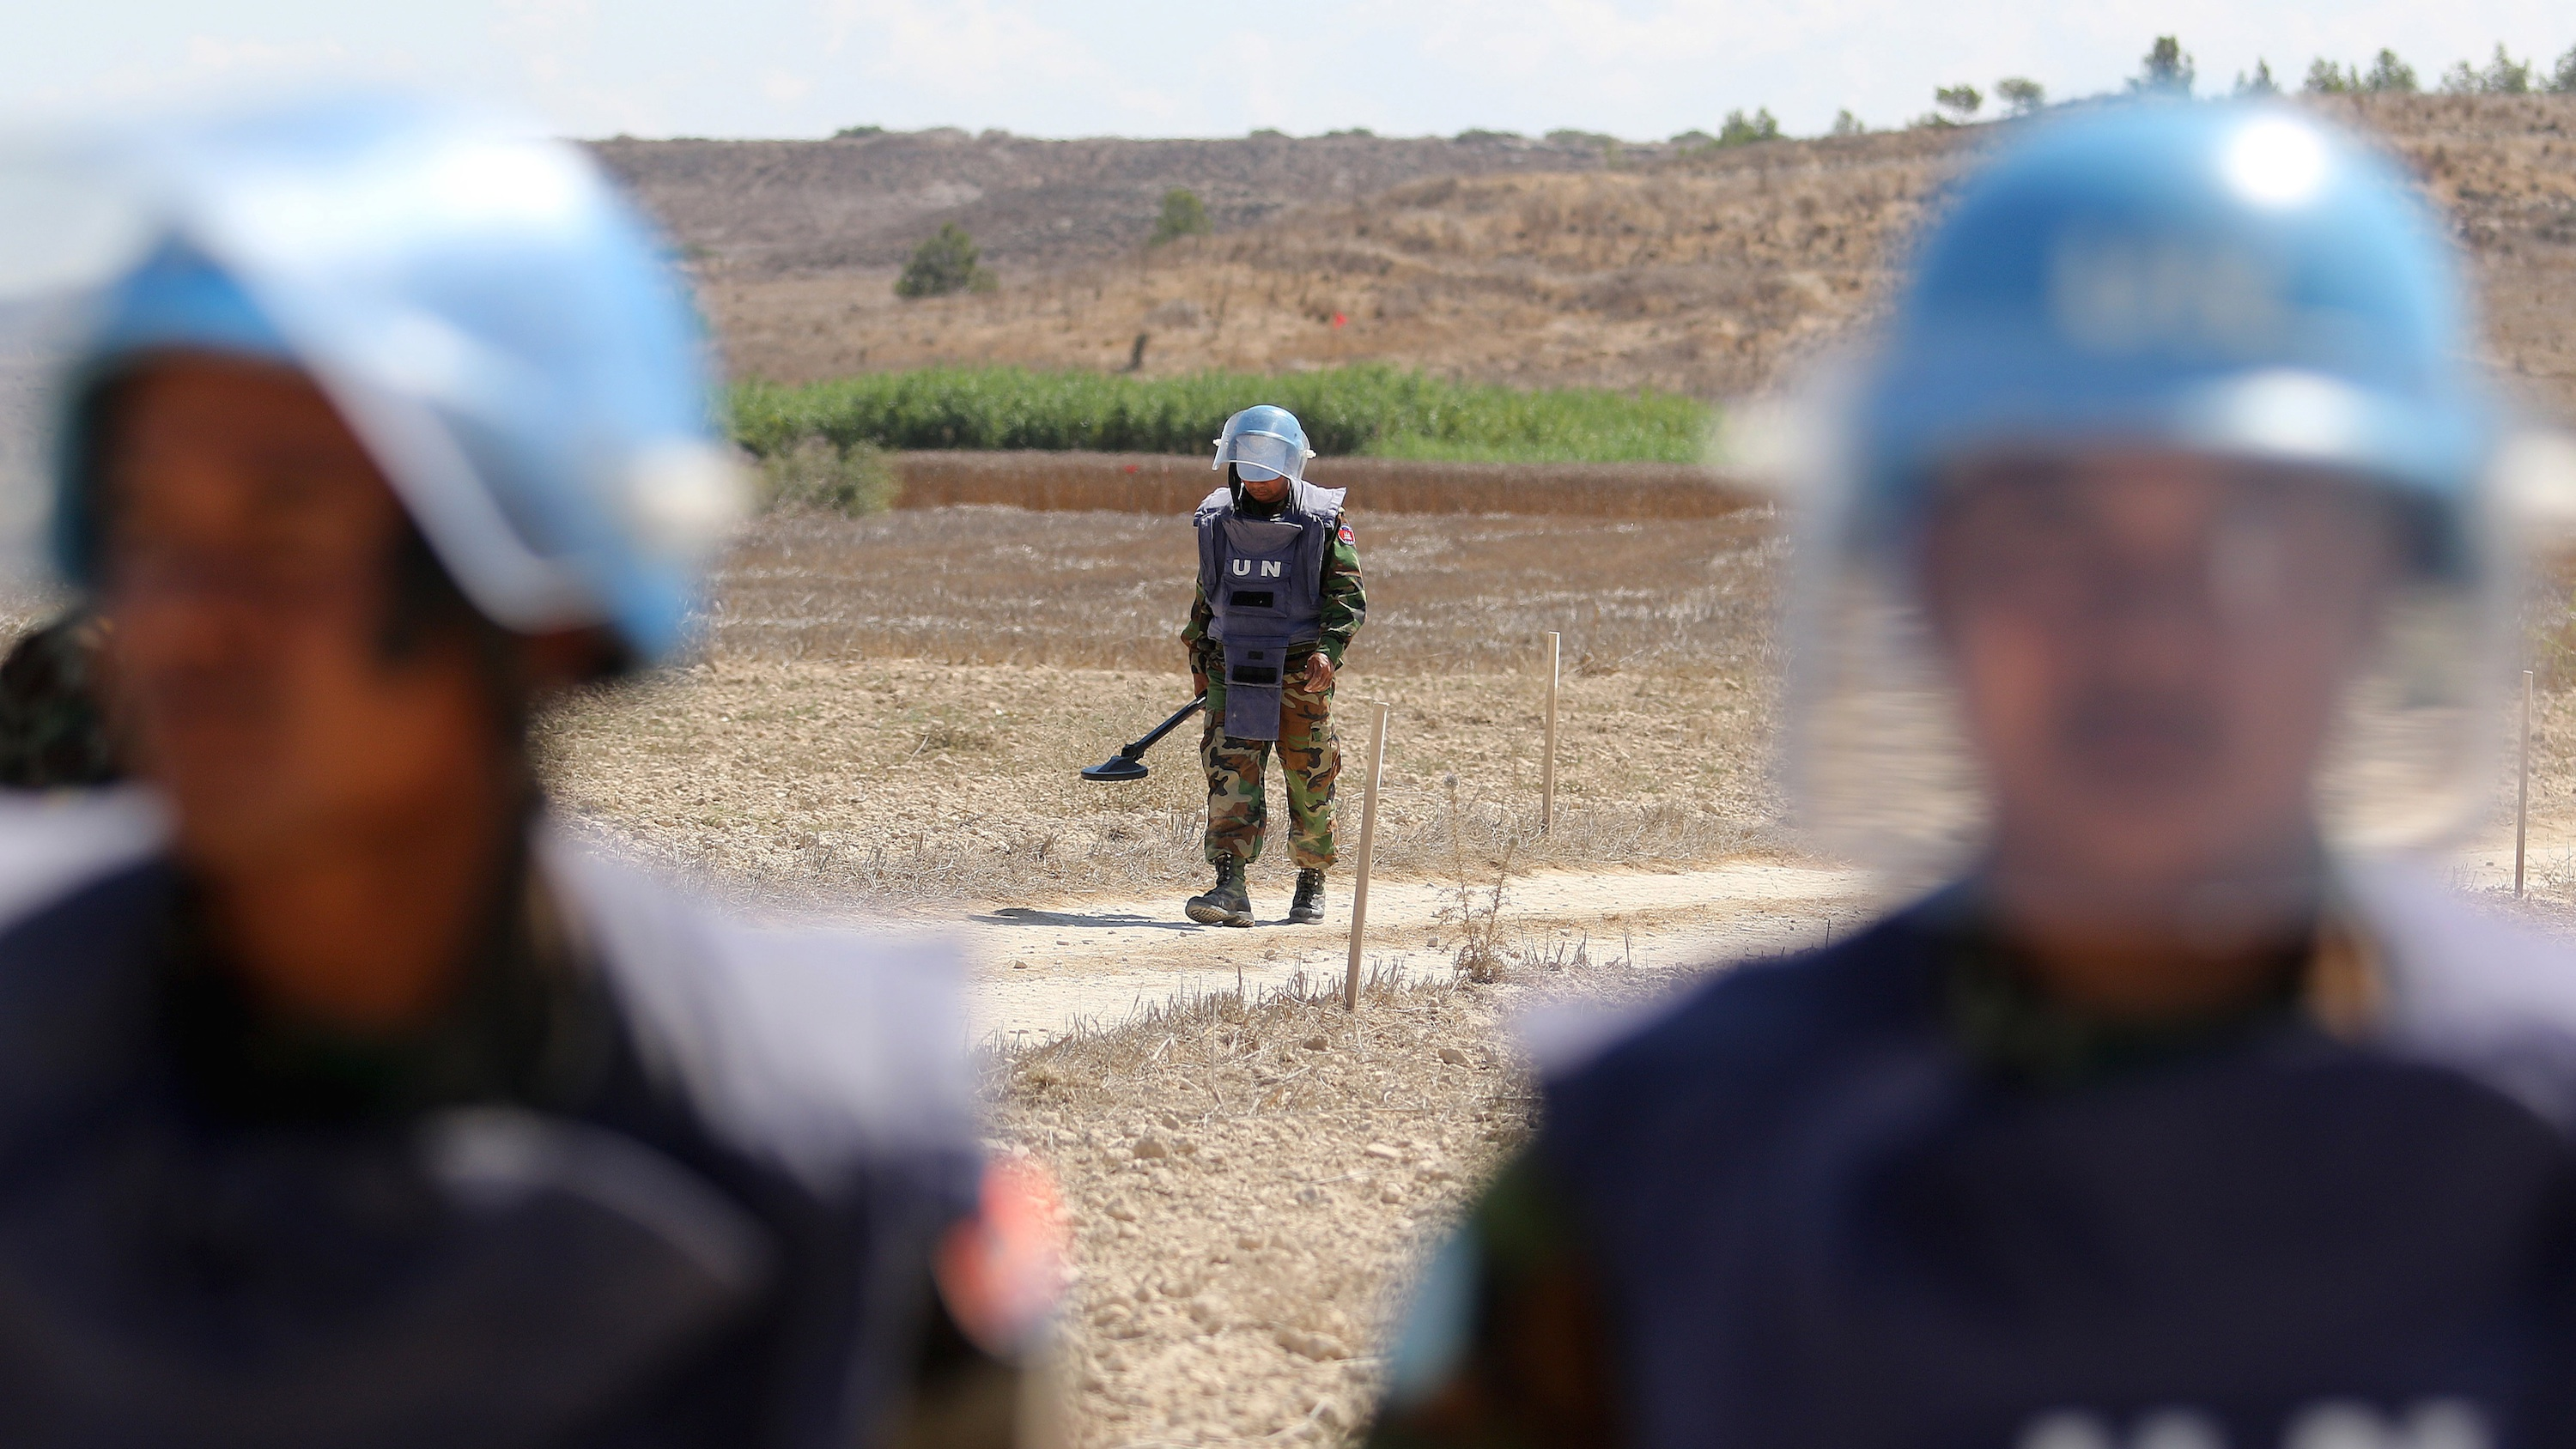 For peacekeepers to be effective, they need up-to-date tech at their disposal.